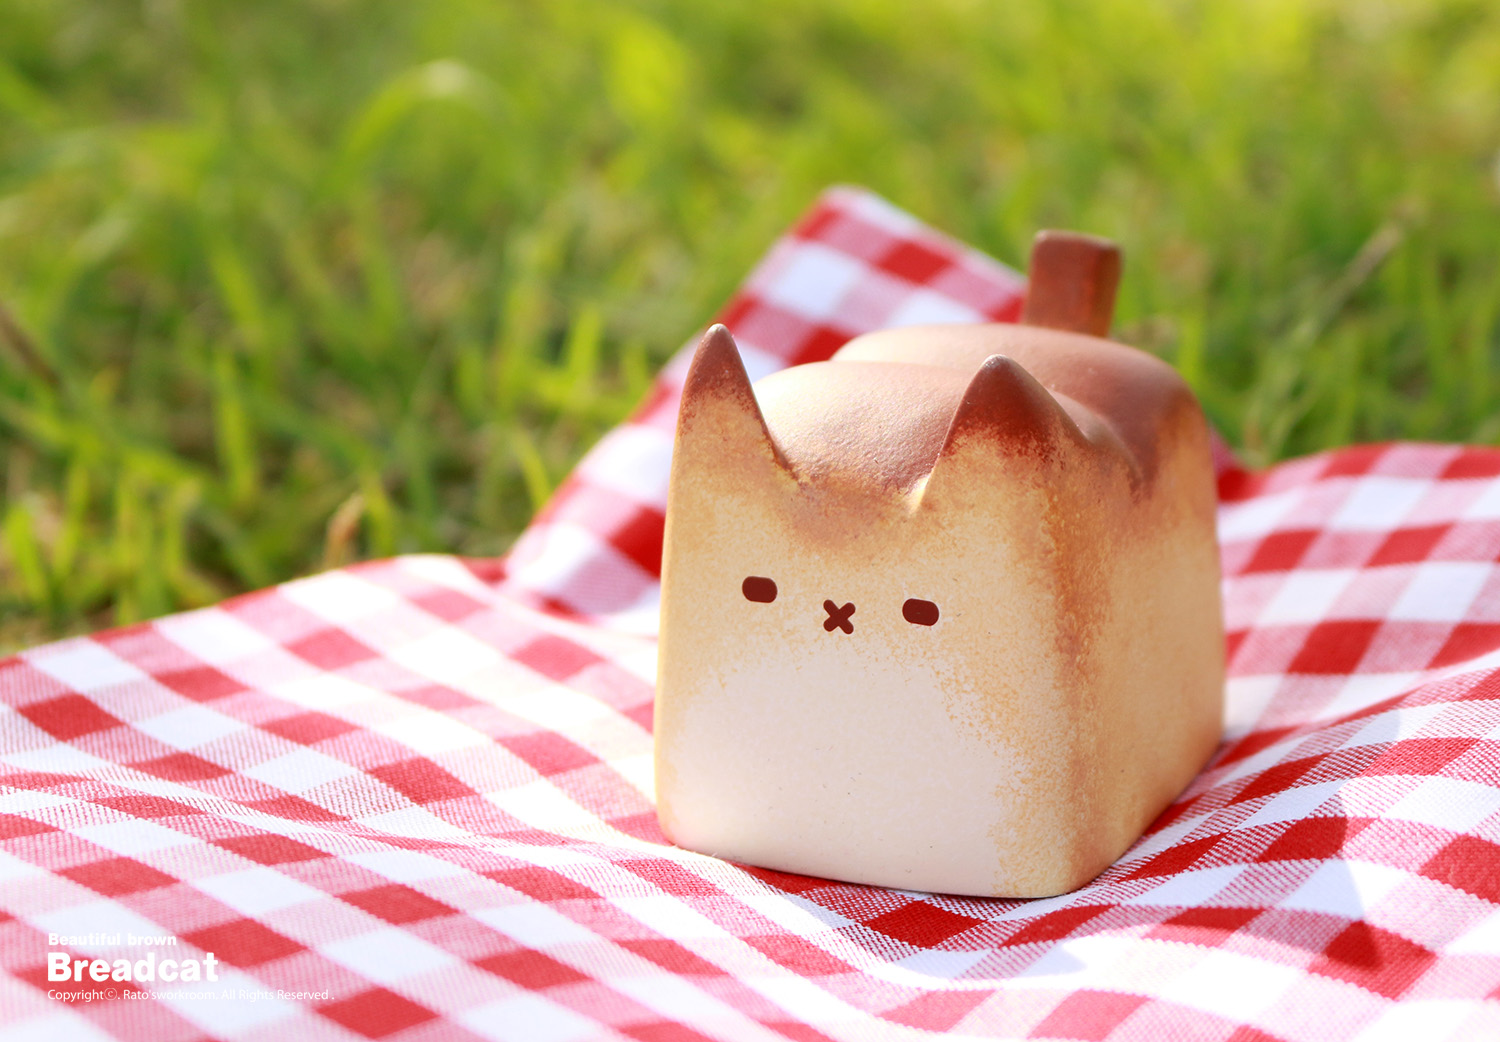 warmly-baked-the-breadcat-fotonew4